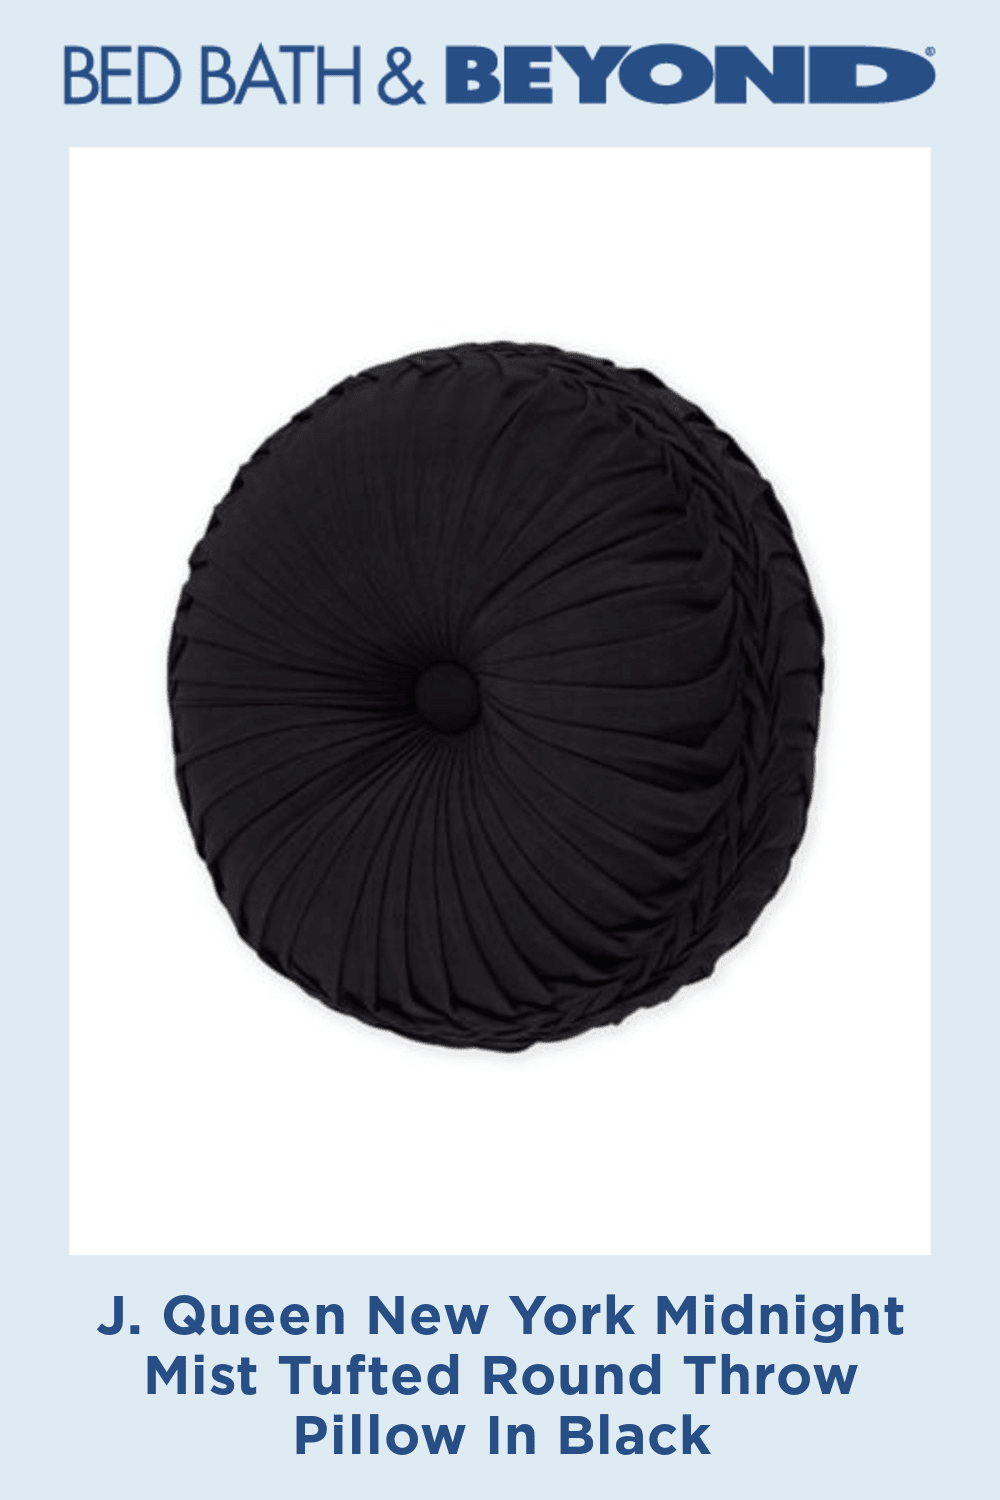 J. Queen New York Midnight Mist Tufted Round Throw Pillow In Black